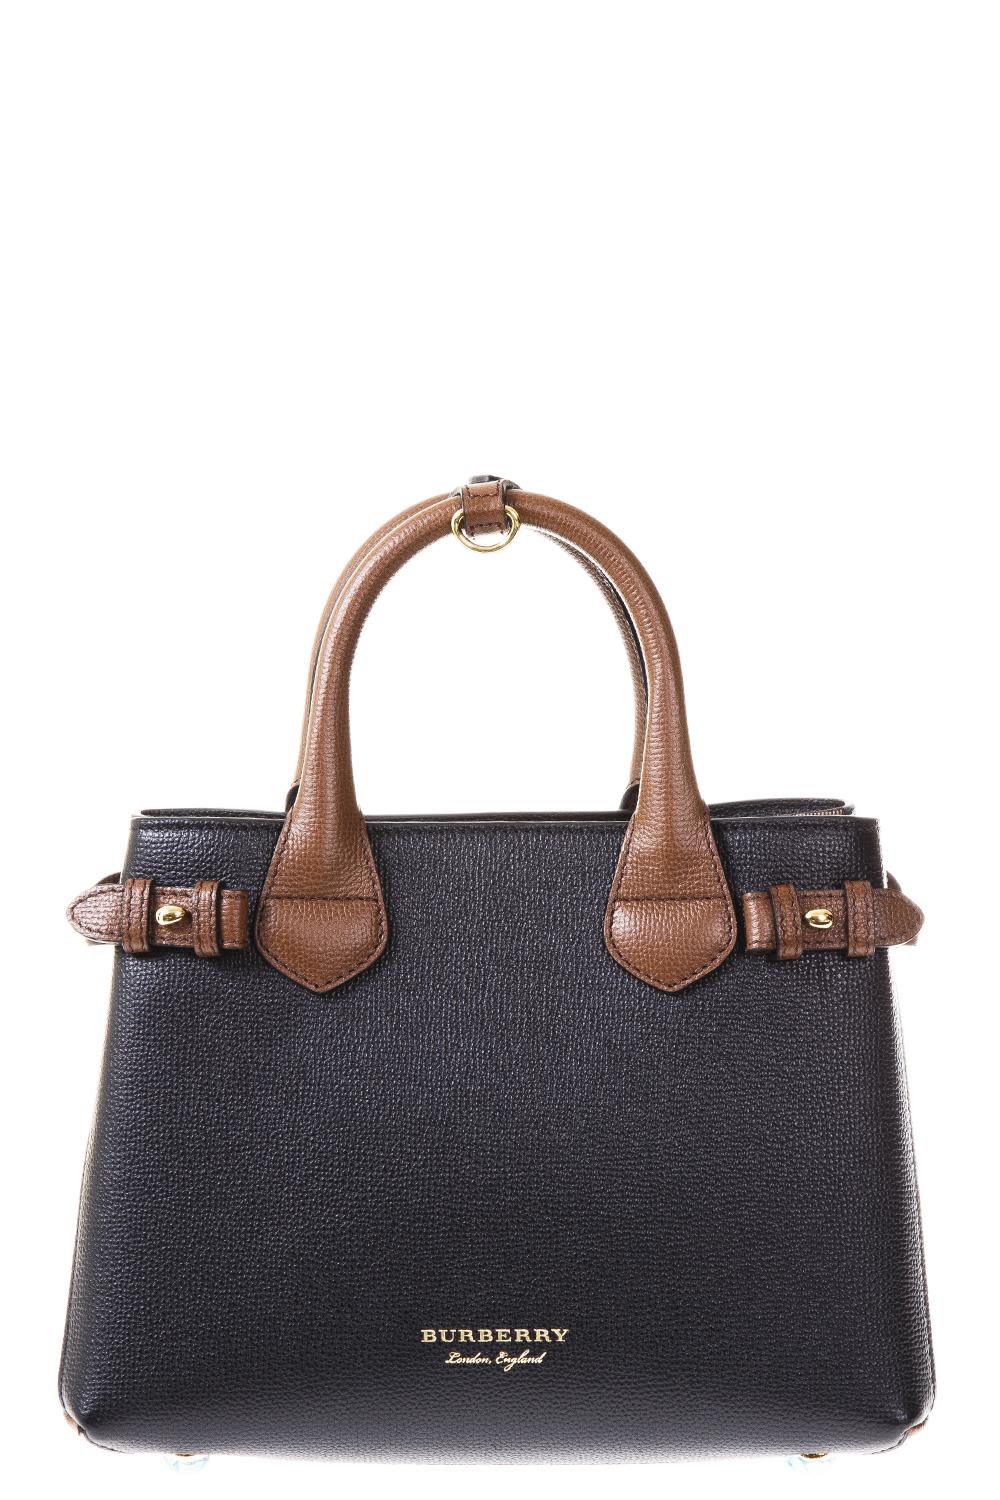 Burberry Checkhouse & Leather Banner Bag